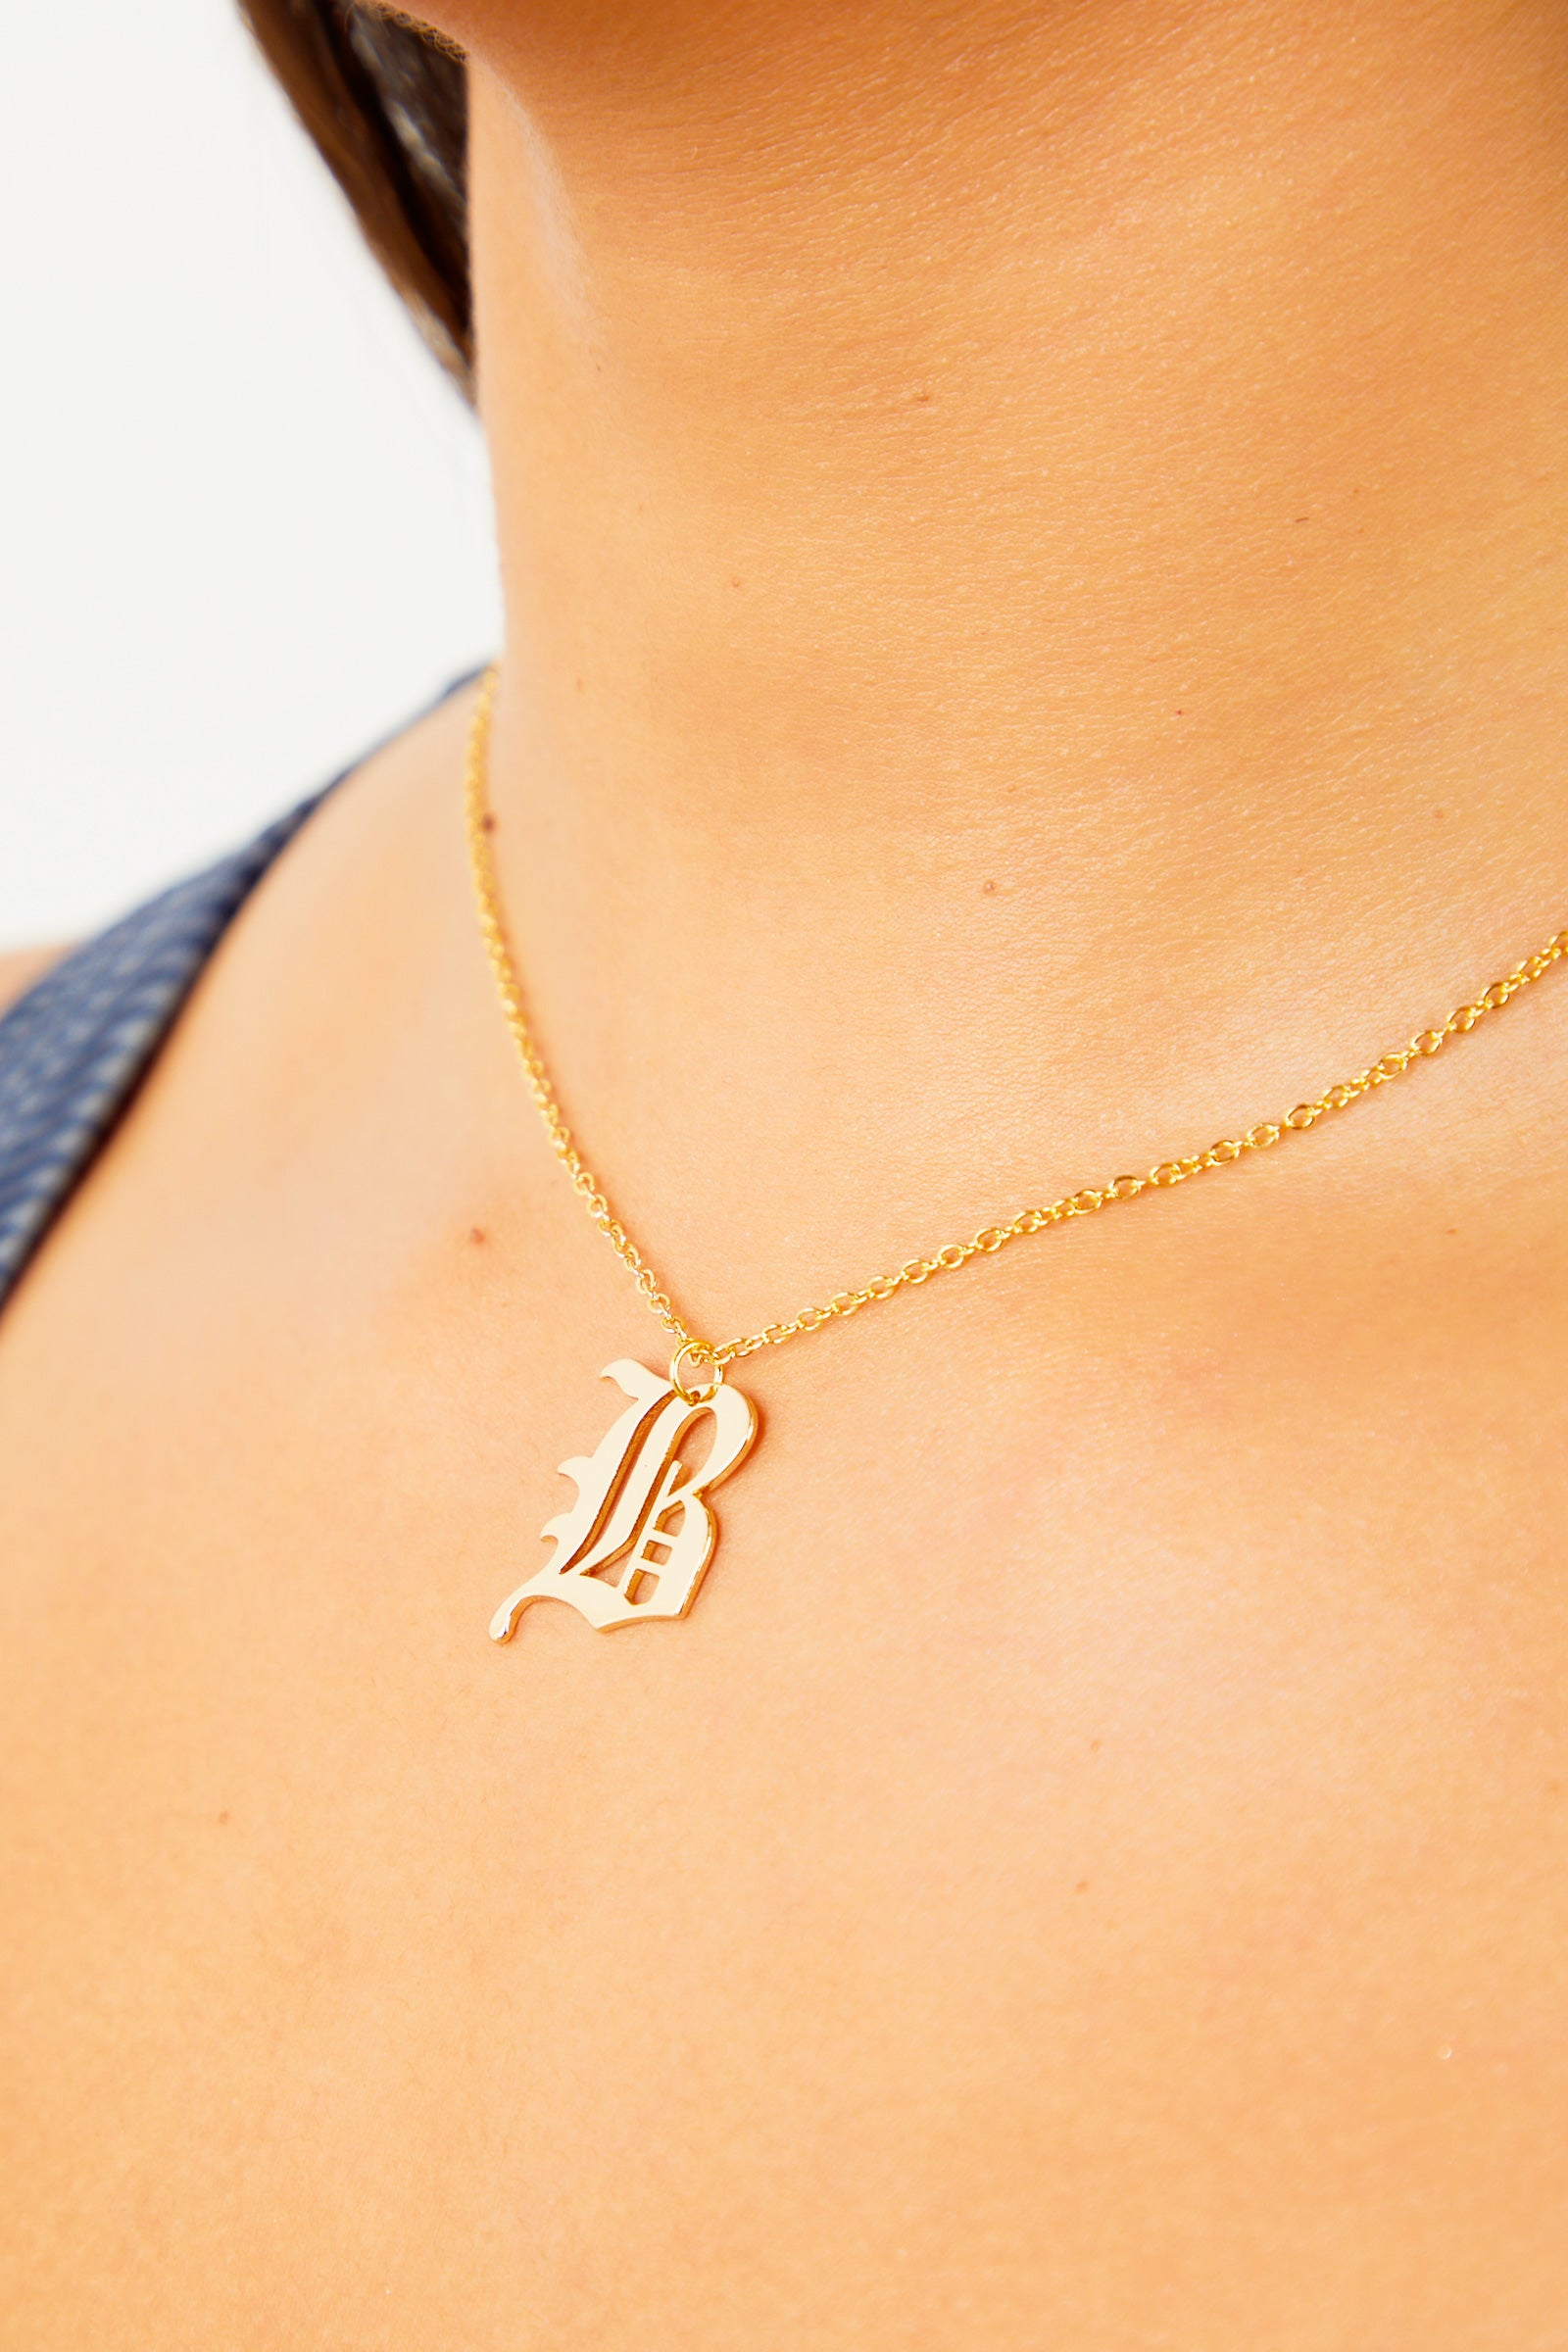 B Old English Initial Necklace